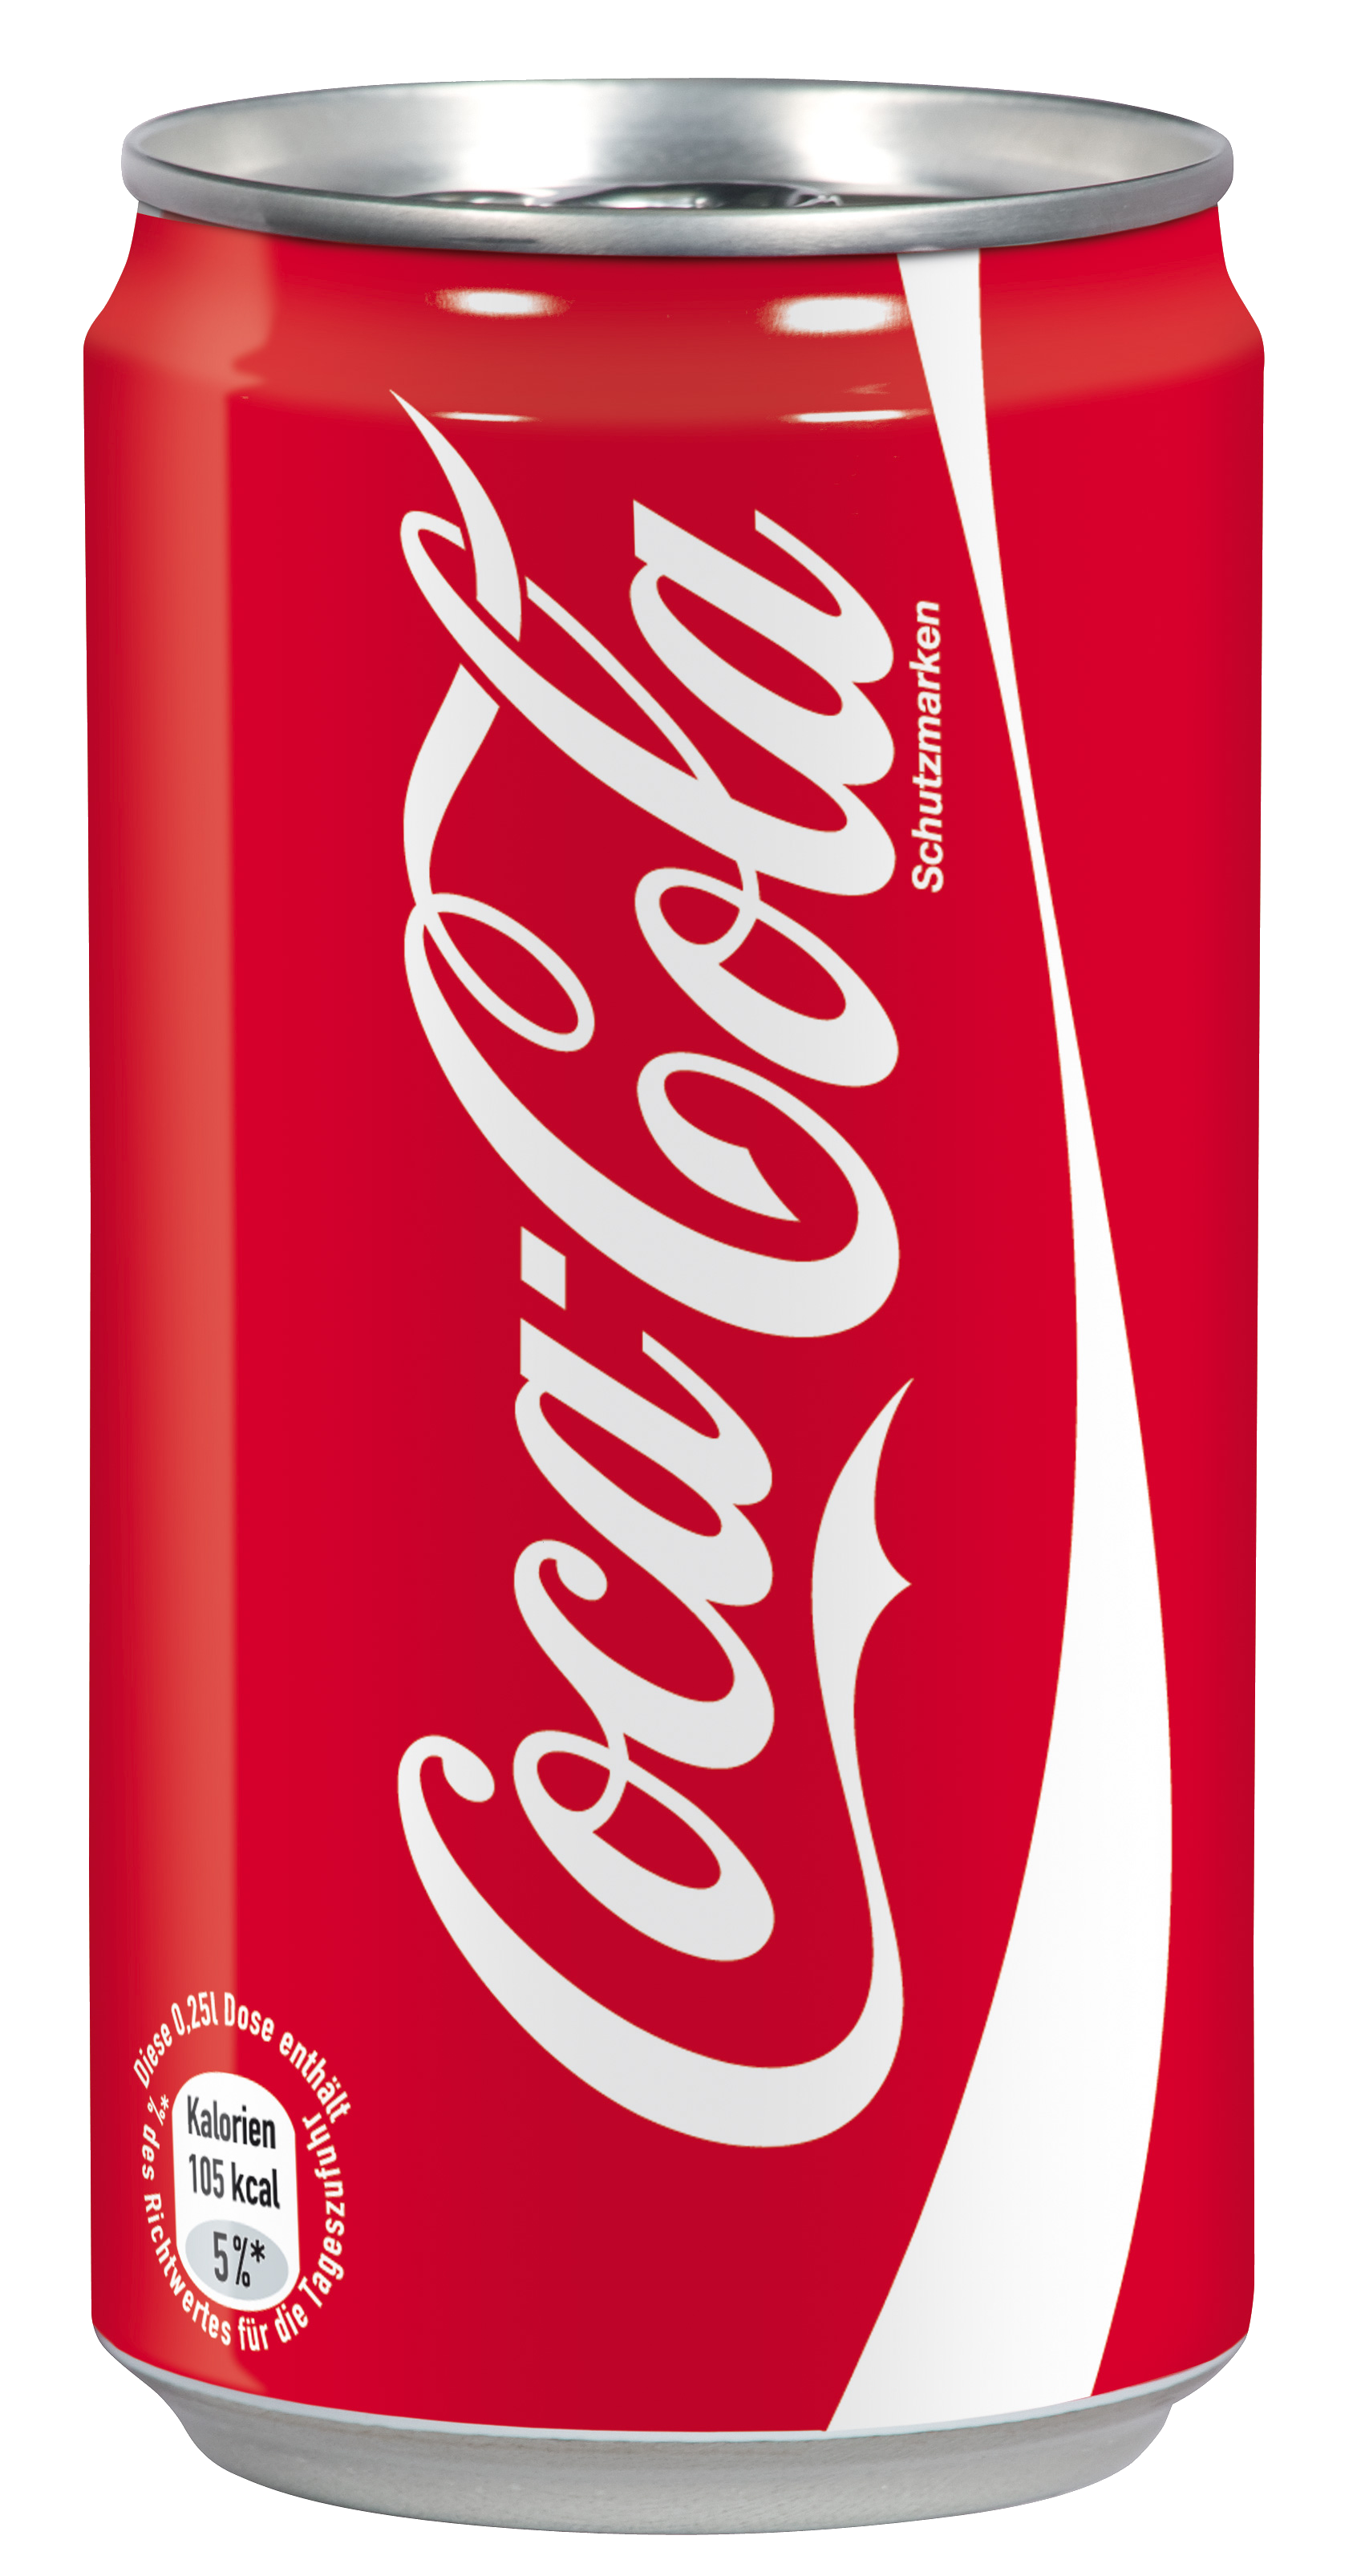 Cola clipart Free Art image Cola download